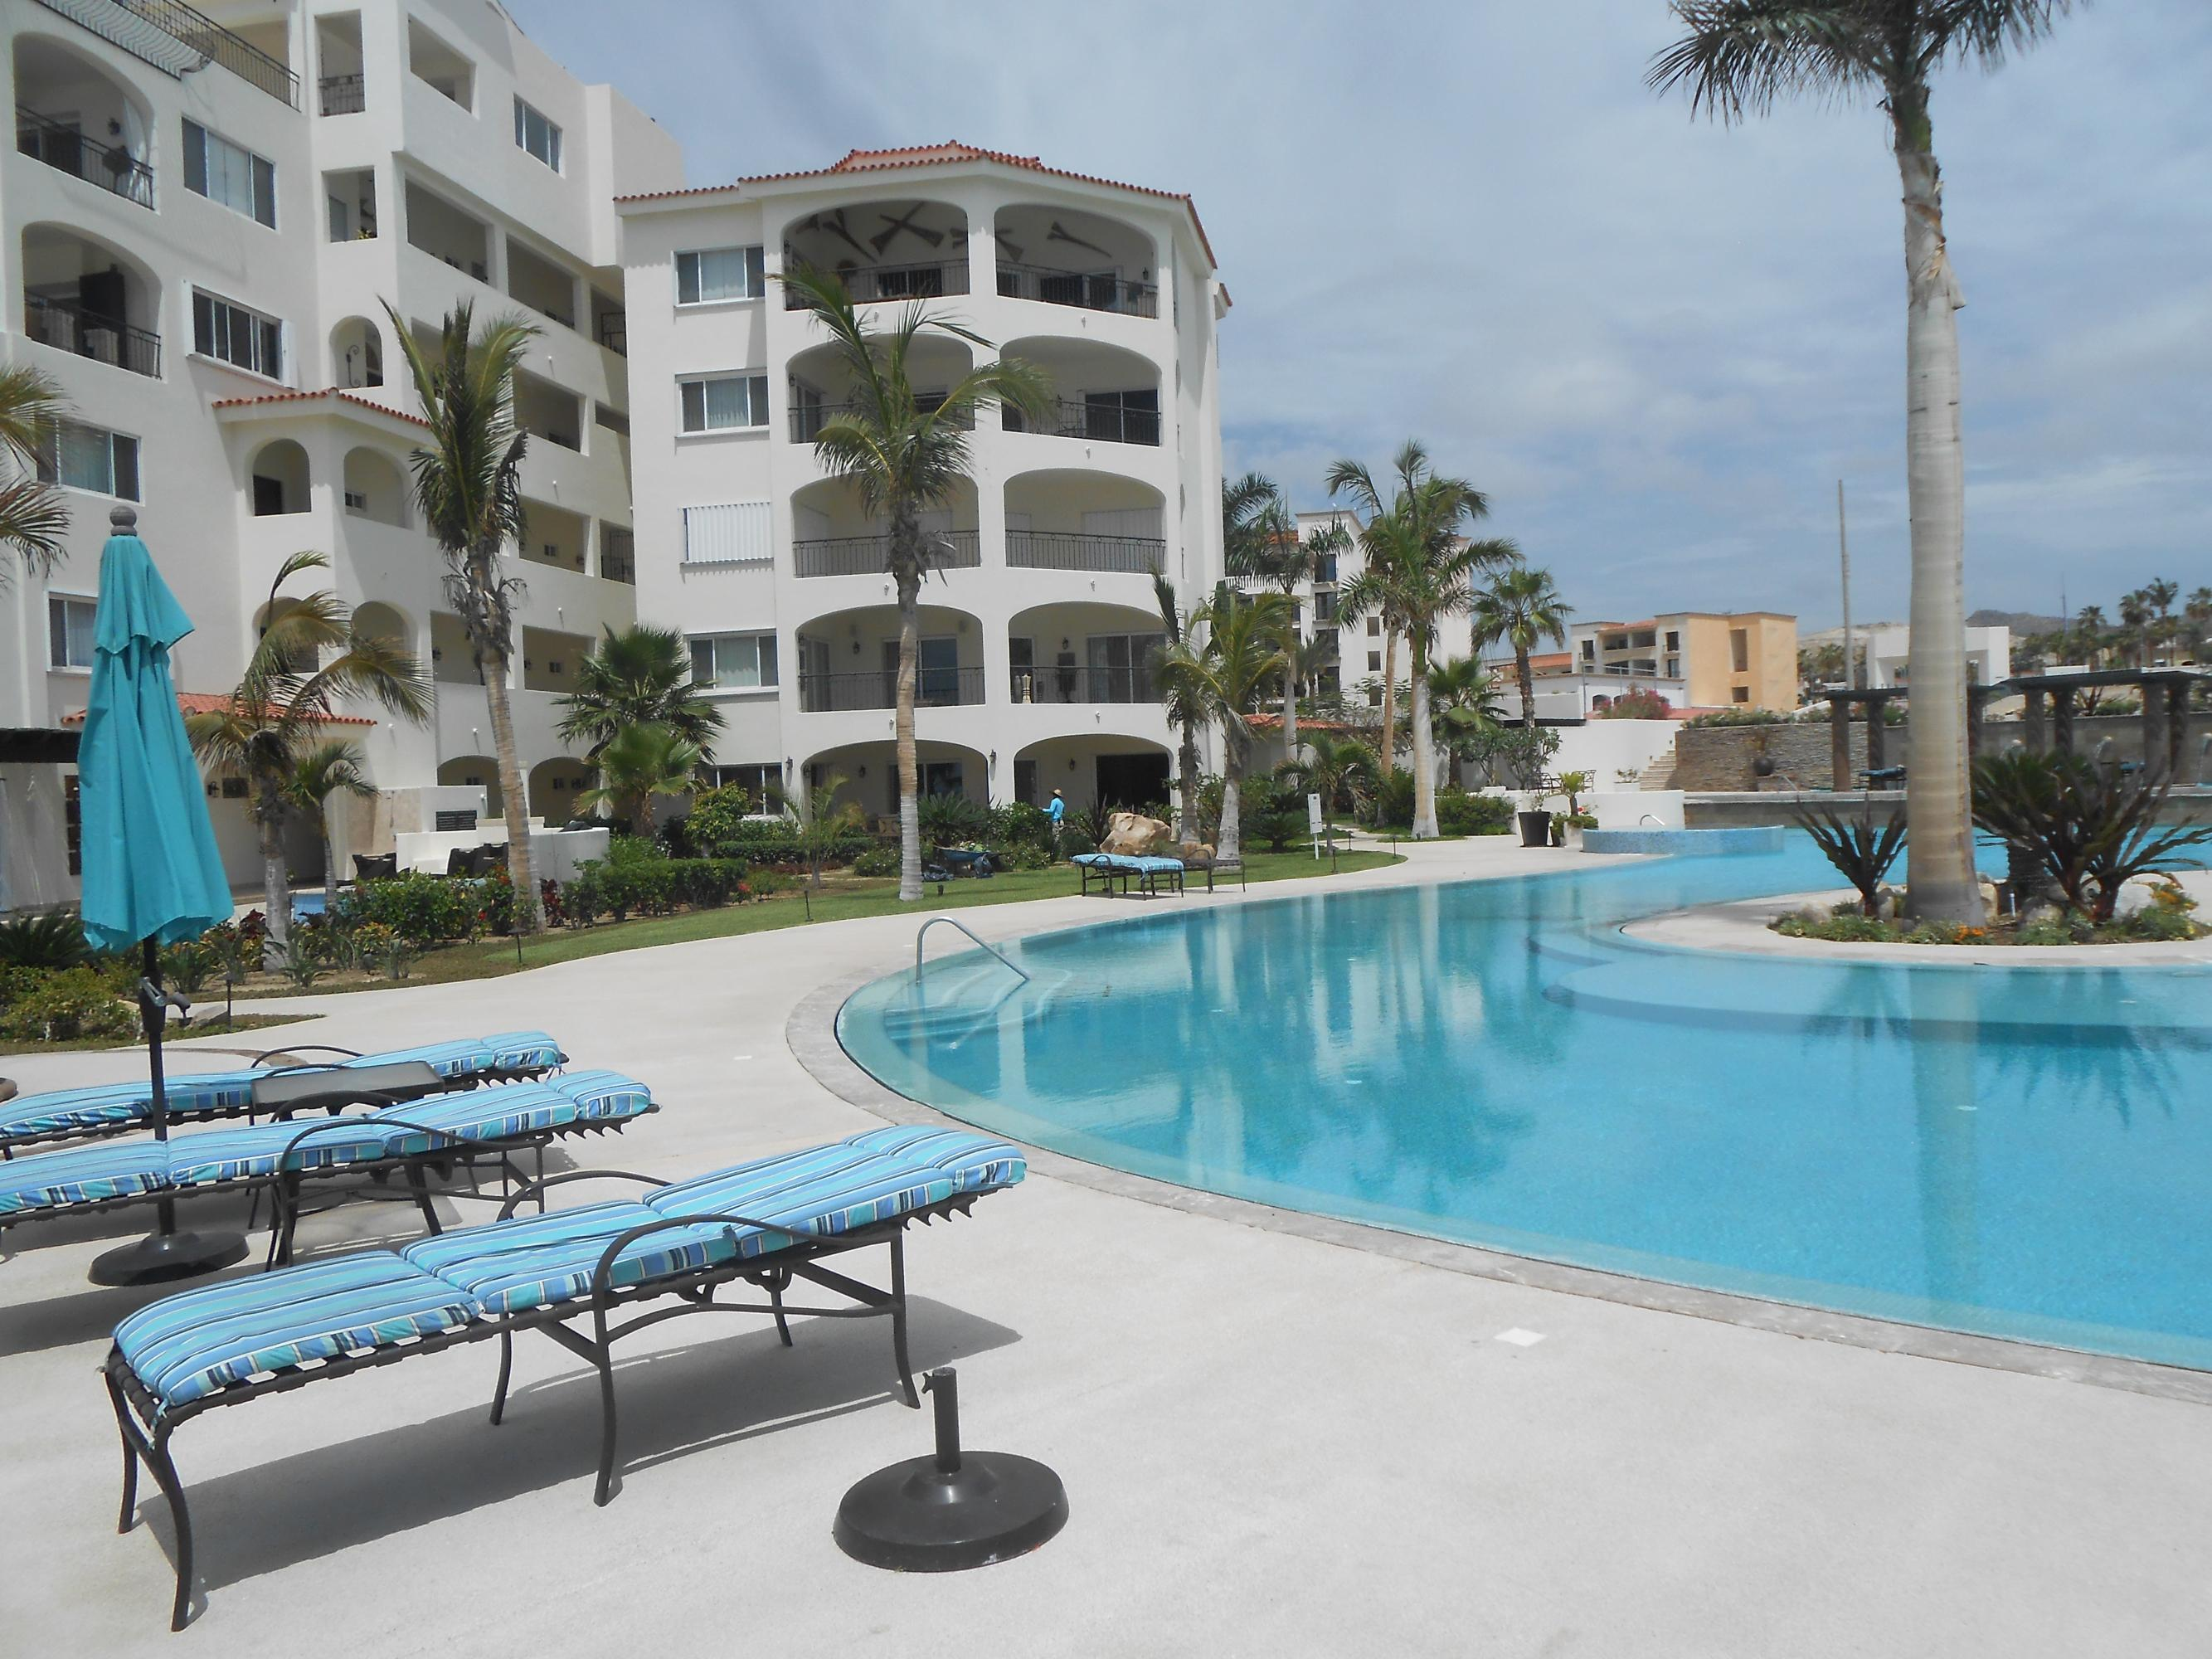 San Jose del Cabo, 2 Bedrooms Bedrooms, 7 Rooms Rooms,2 BathroomsBathrooms,Condo,For Sale,Hotel Blvd.,15-1227